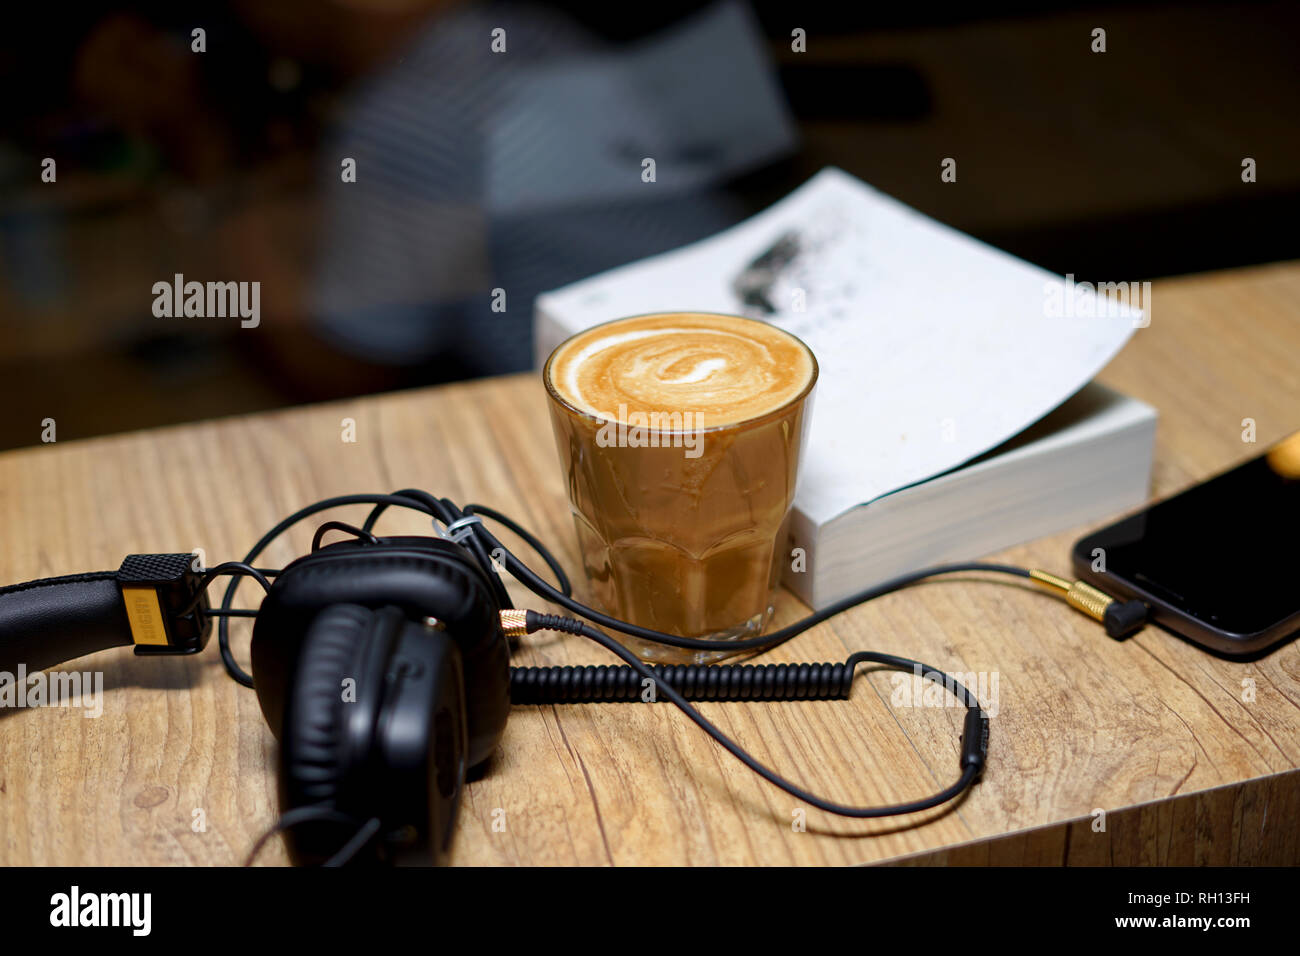 Hot Coffee, muisc and reading a book on the table - Stock Image